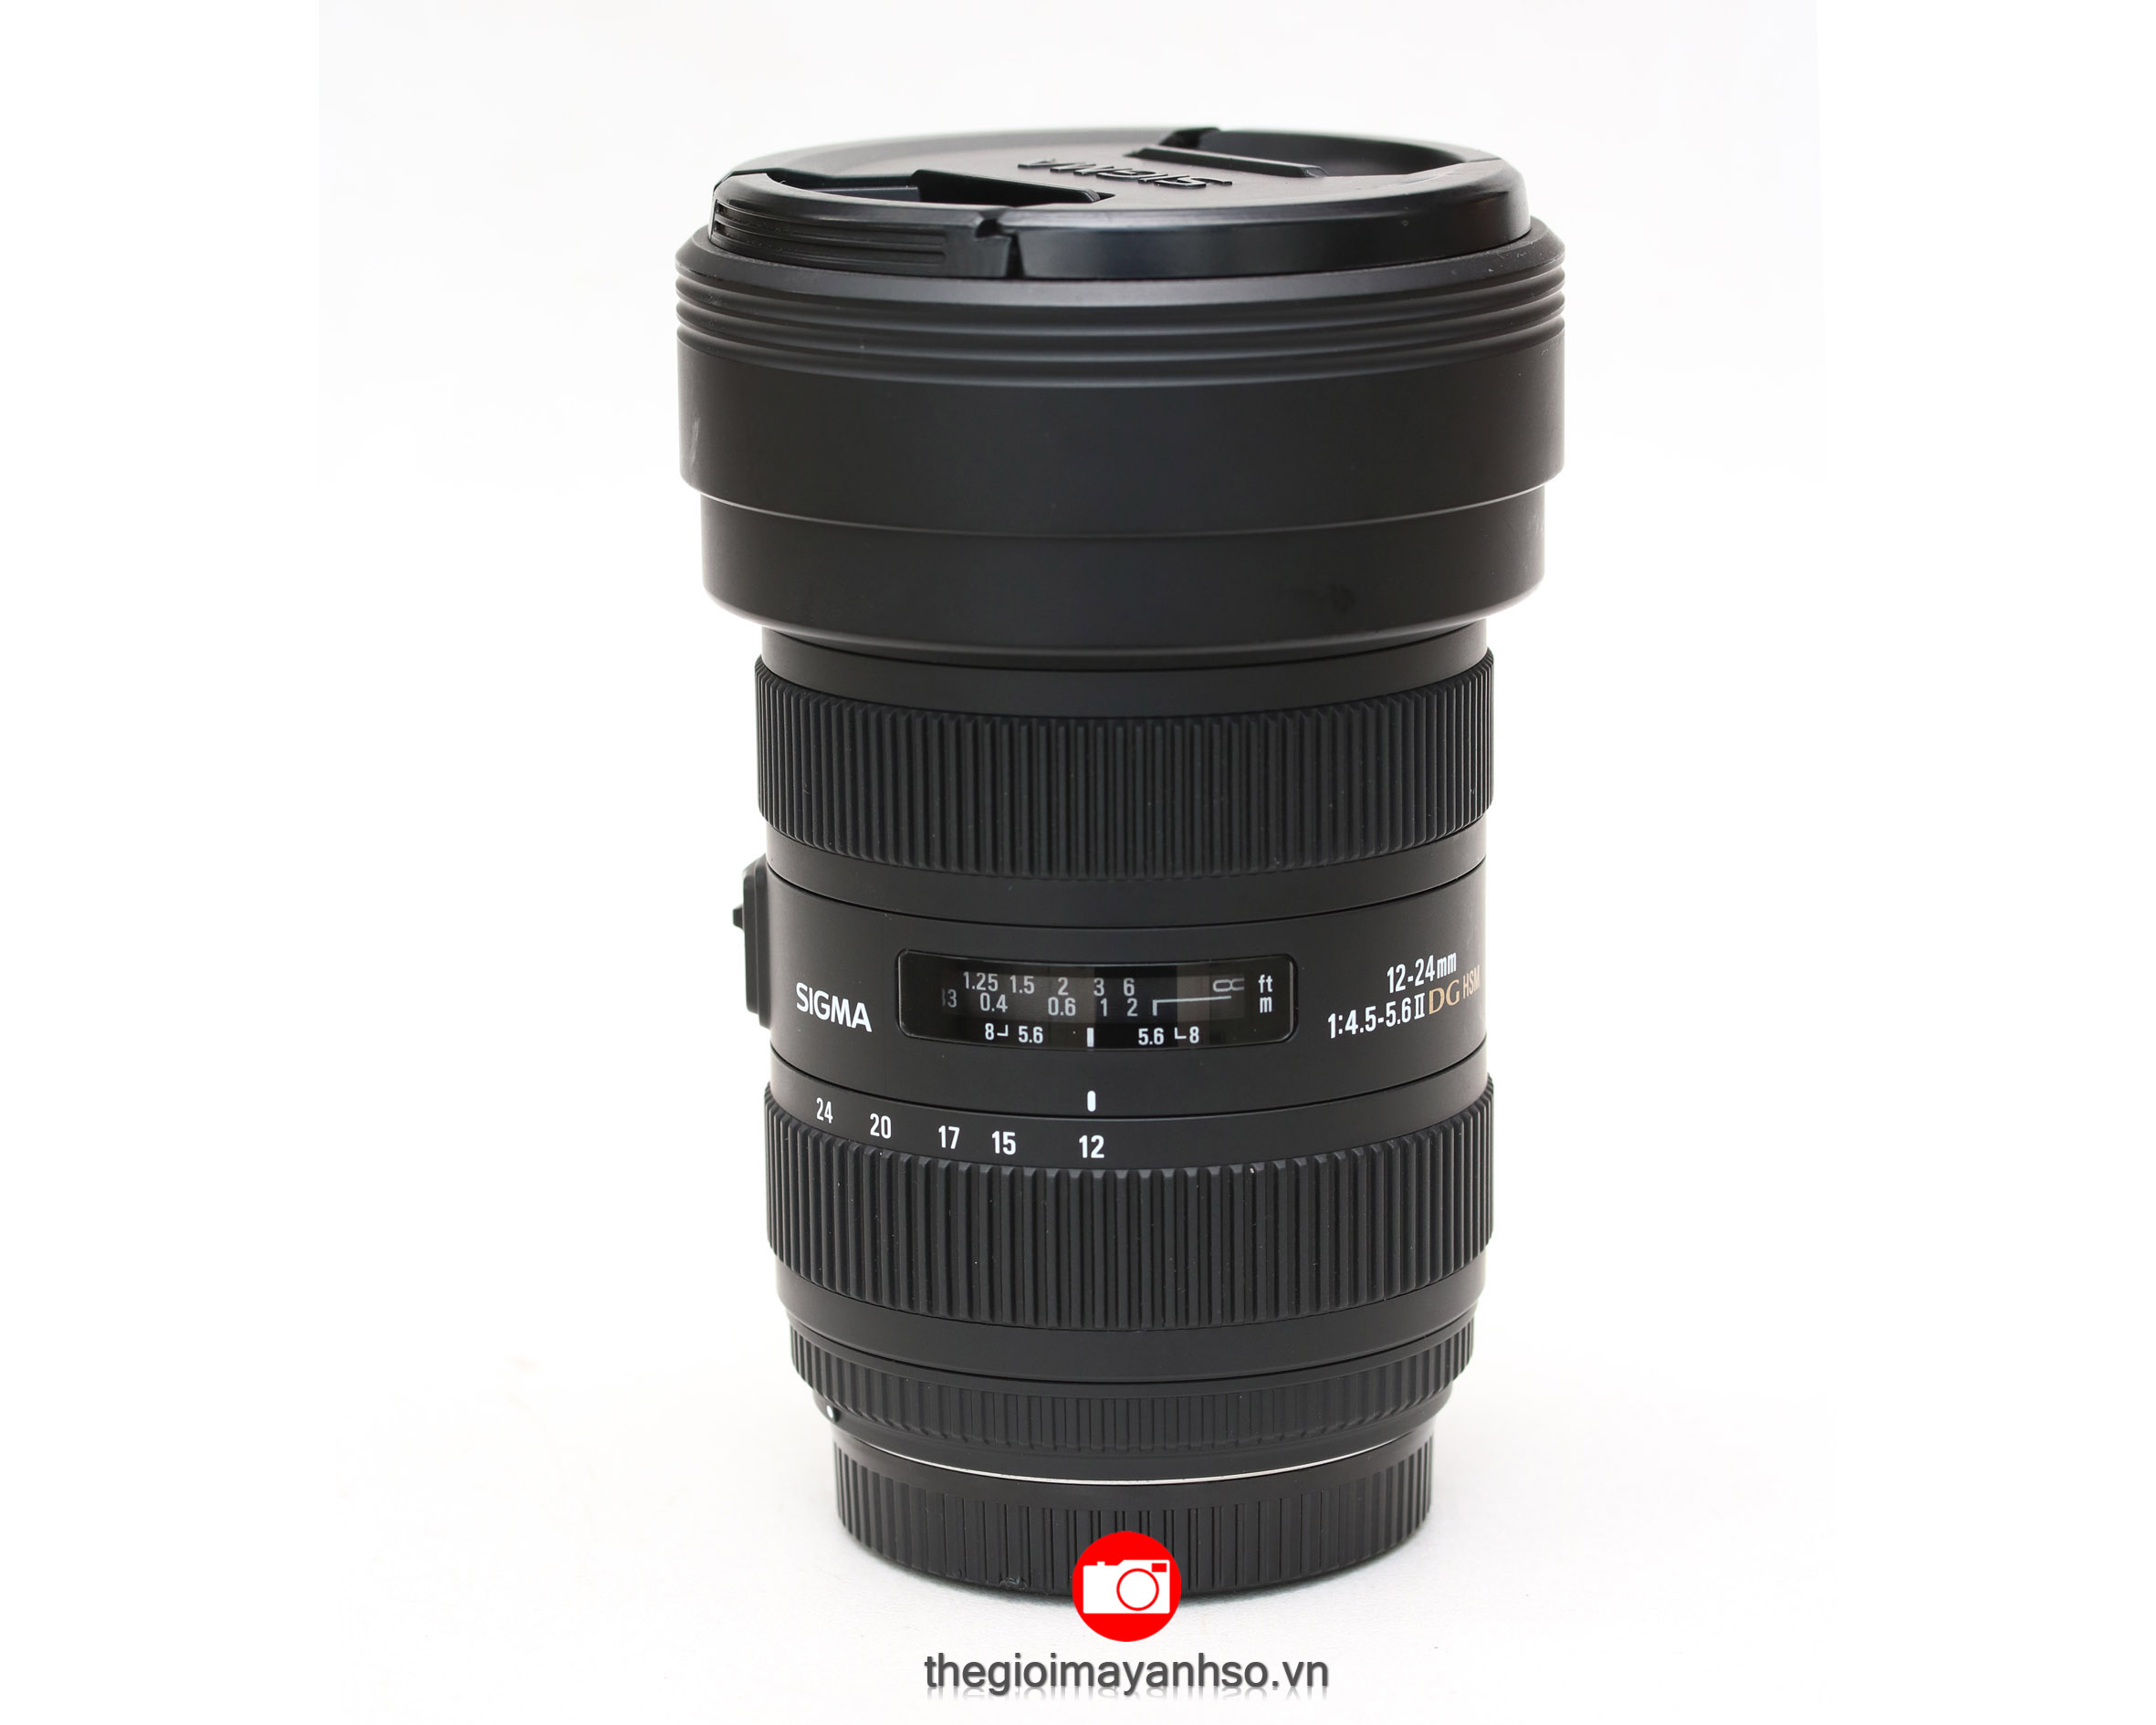 Sigma 12-24mm f/4.5-5.6 DG HSM II Lens for Canon